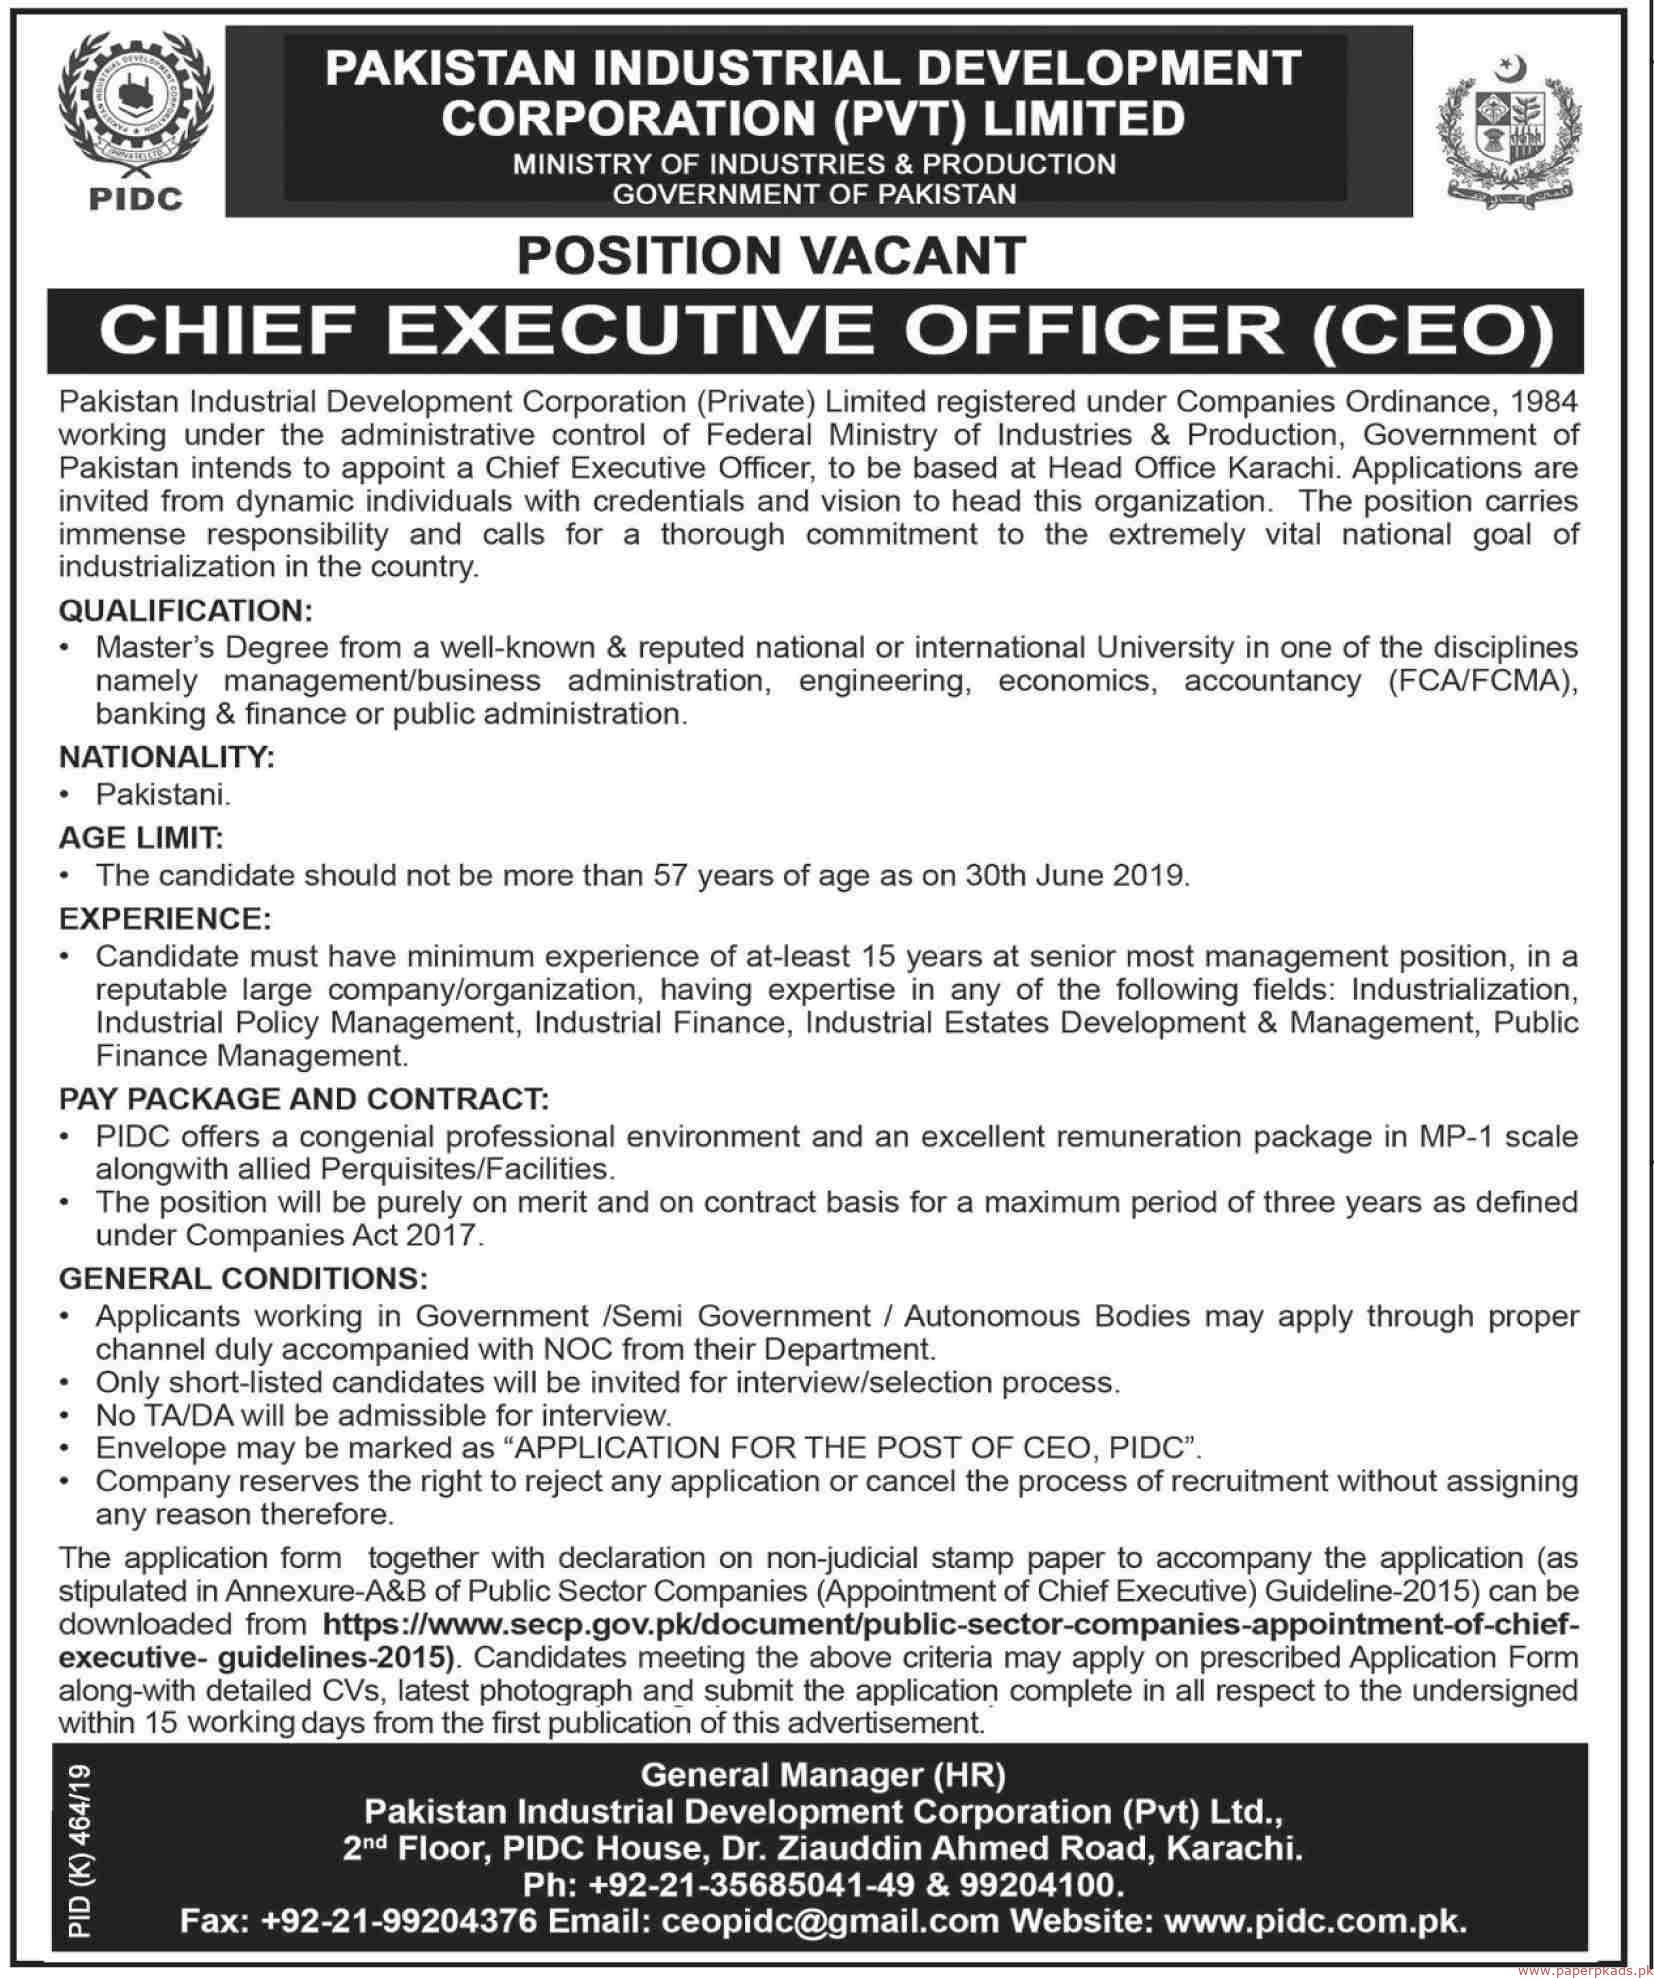 Ministry of Industries & Production Government of Pakistan Jobs 2019 Latest